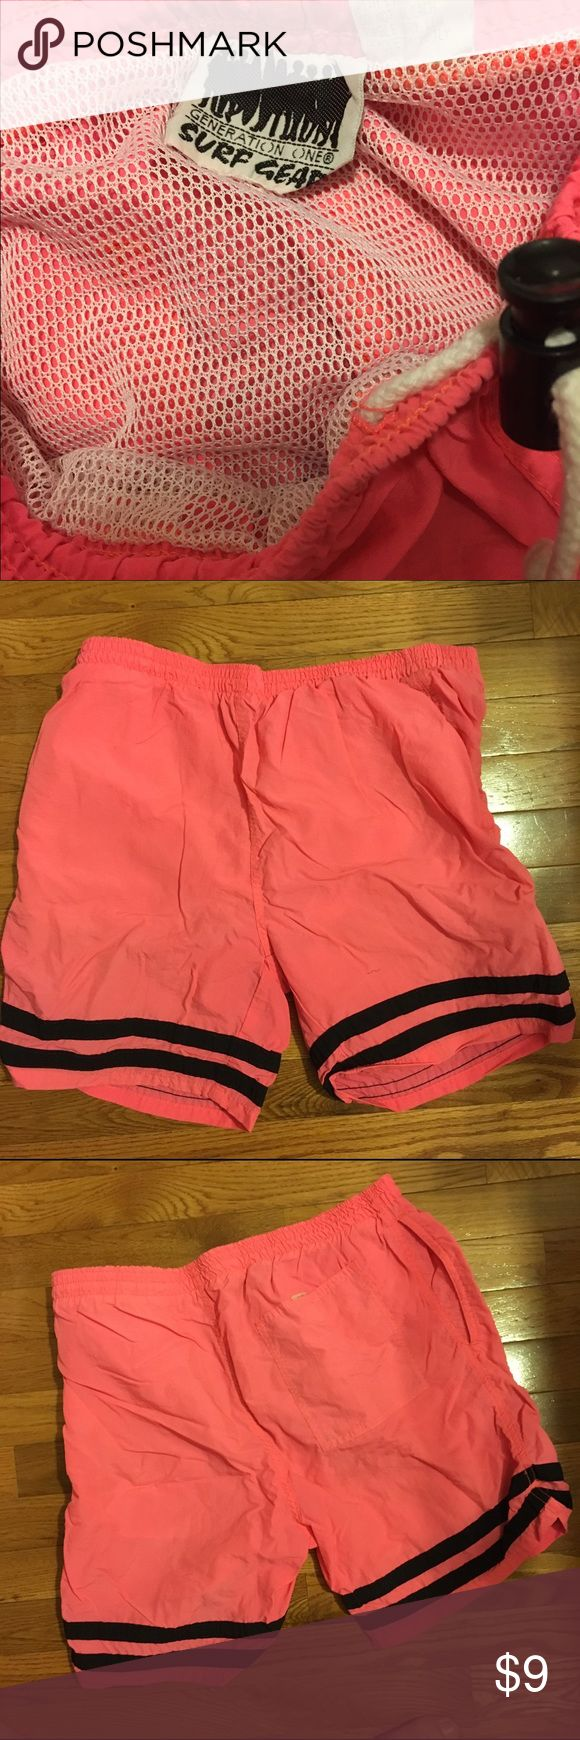 Generation One - Surf Gear - Men's Swim Trunks Super cool retro surf trunks. Mesh inner lining, neon pink with black stripes. Swim Swim Trunks